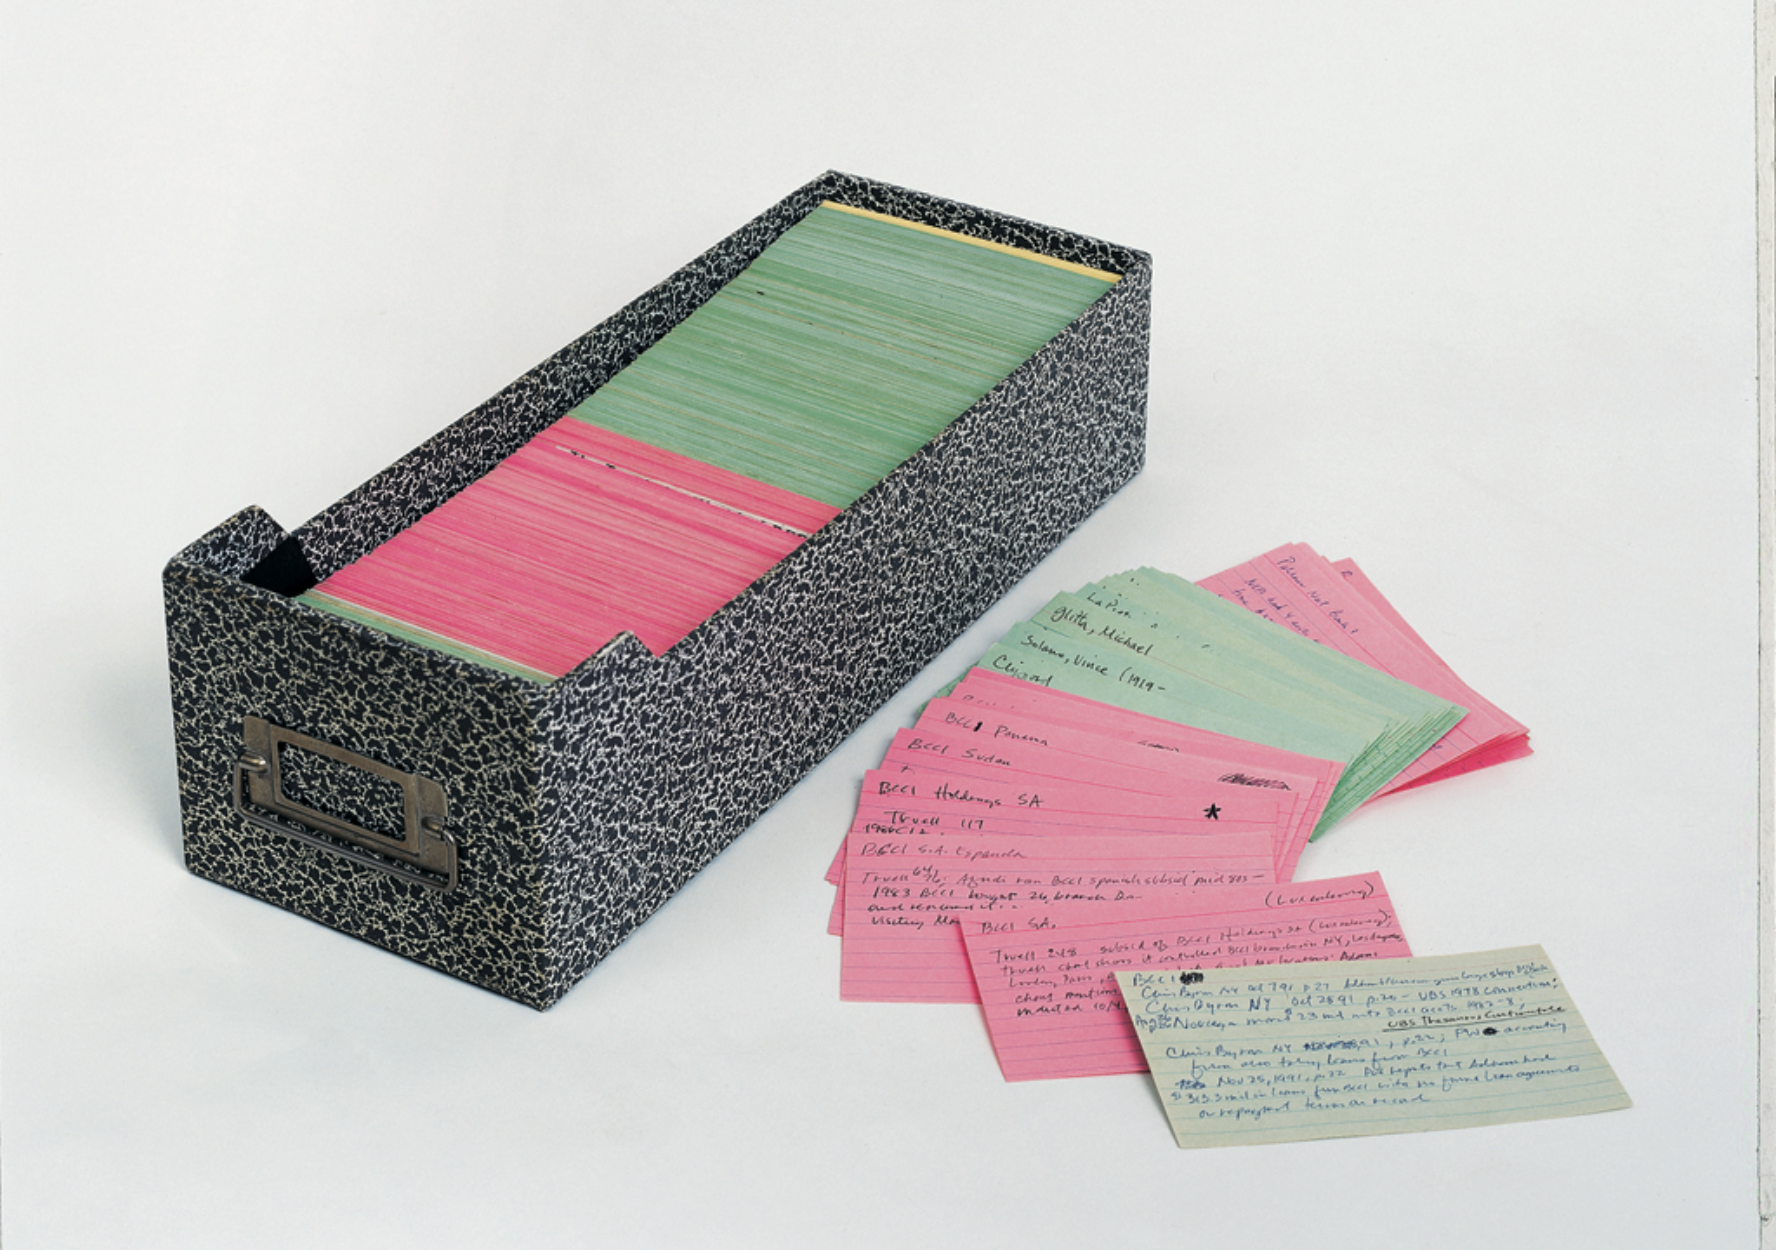 Mark Lombardi's index cards, with notes from his research on the activities of individuals and groups implicated in the financial scandals he was investigating, 1998-2001. Photograph by John Berens. Courtesy of Donald Lombardi and Pierogi Gallery.